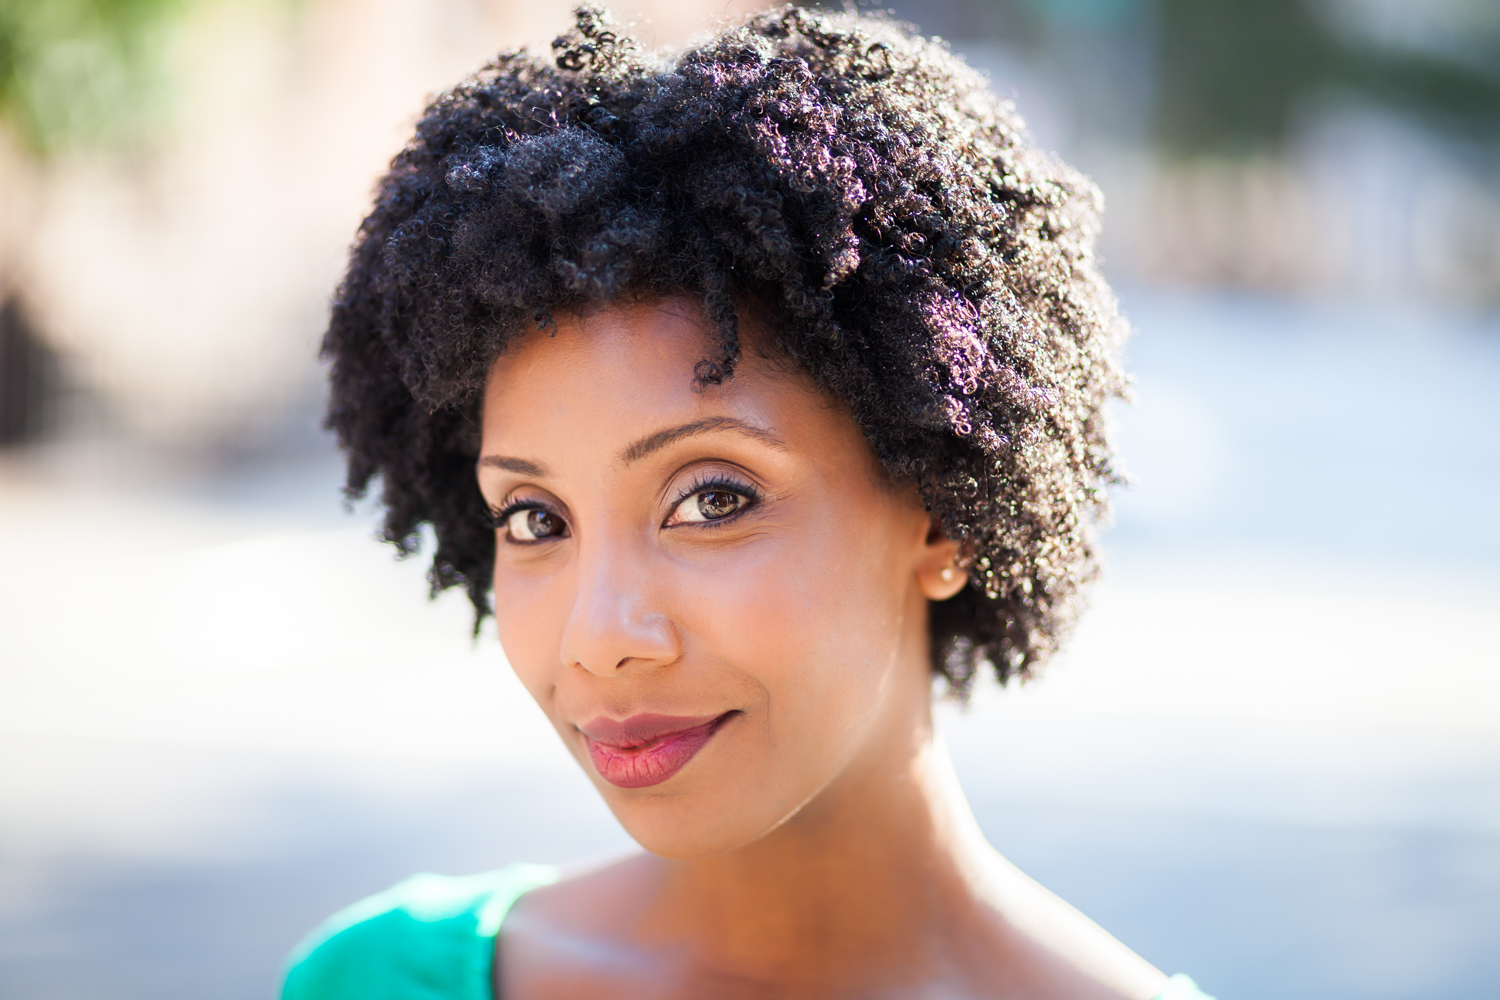 Model headshot of African-American woman with curly hair